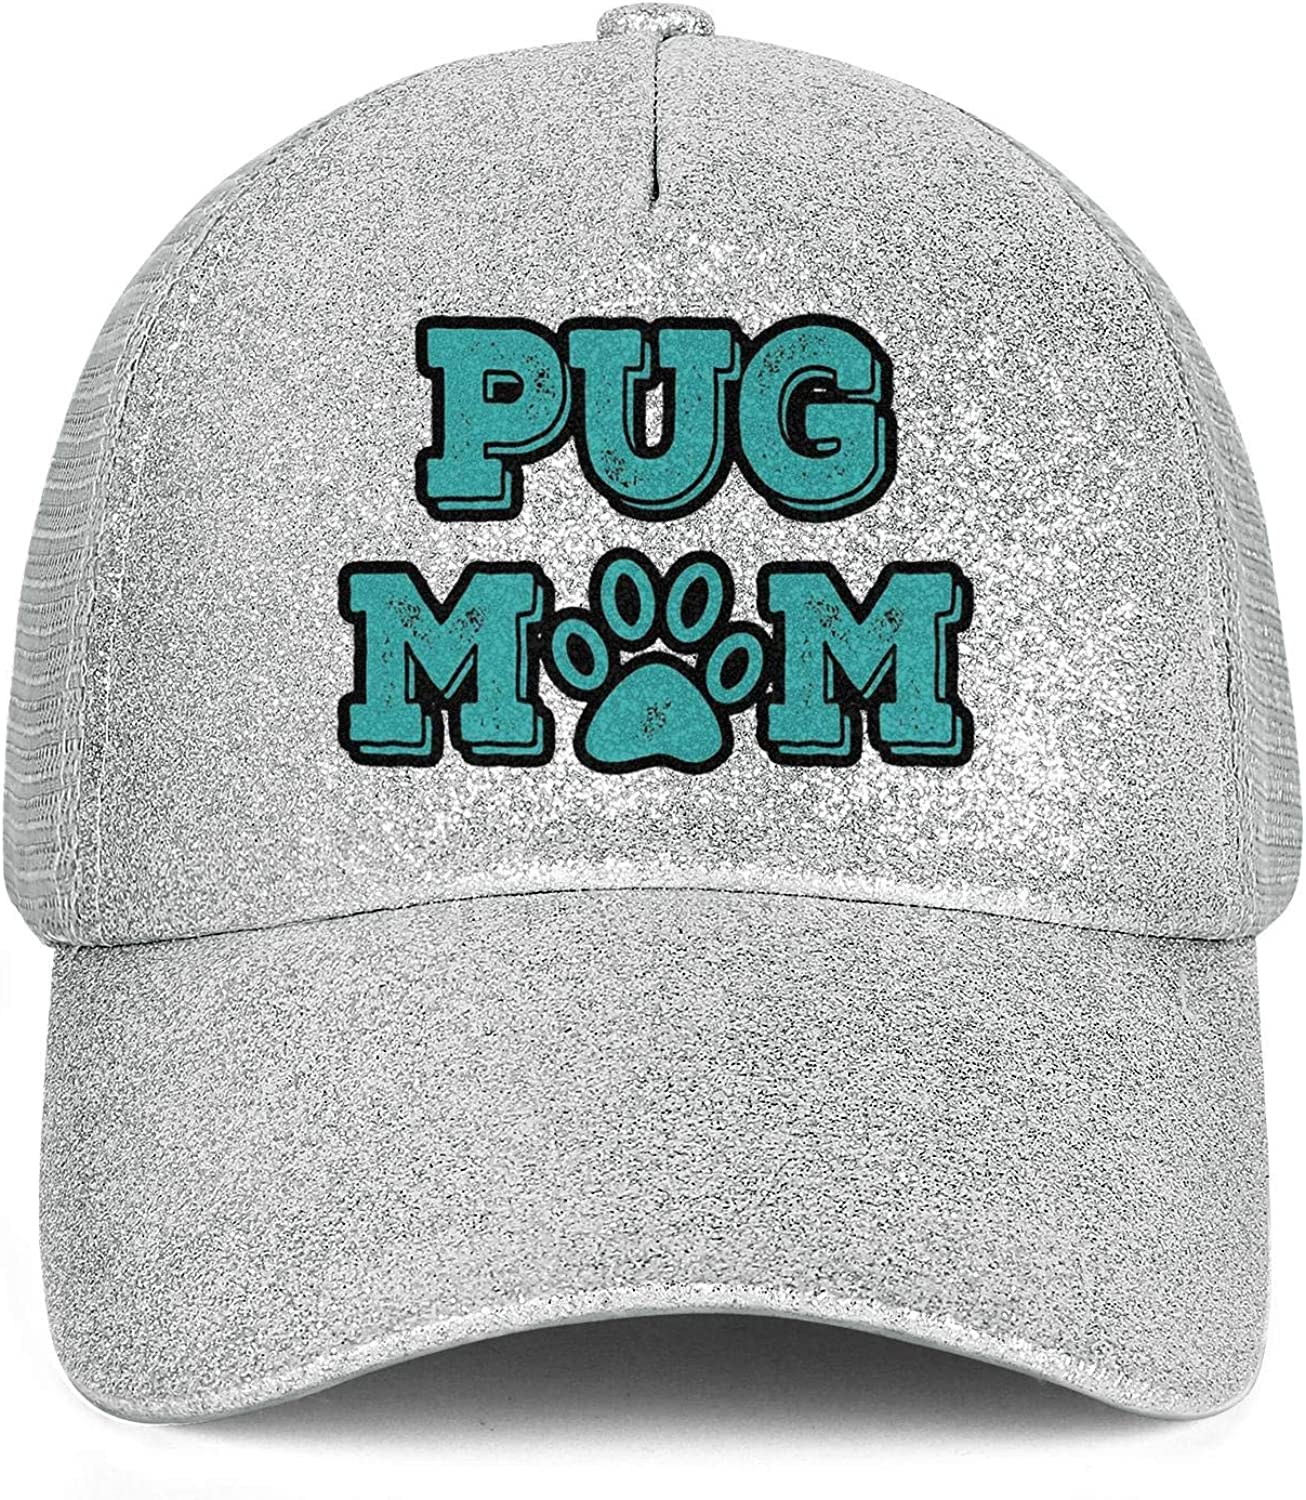 Pug Mom Paw Women High Ponytail Baseball Cap Glitter Adjustable Novelty Hat